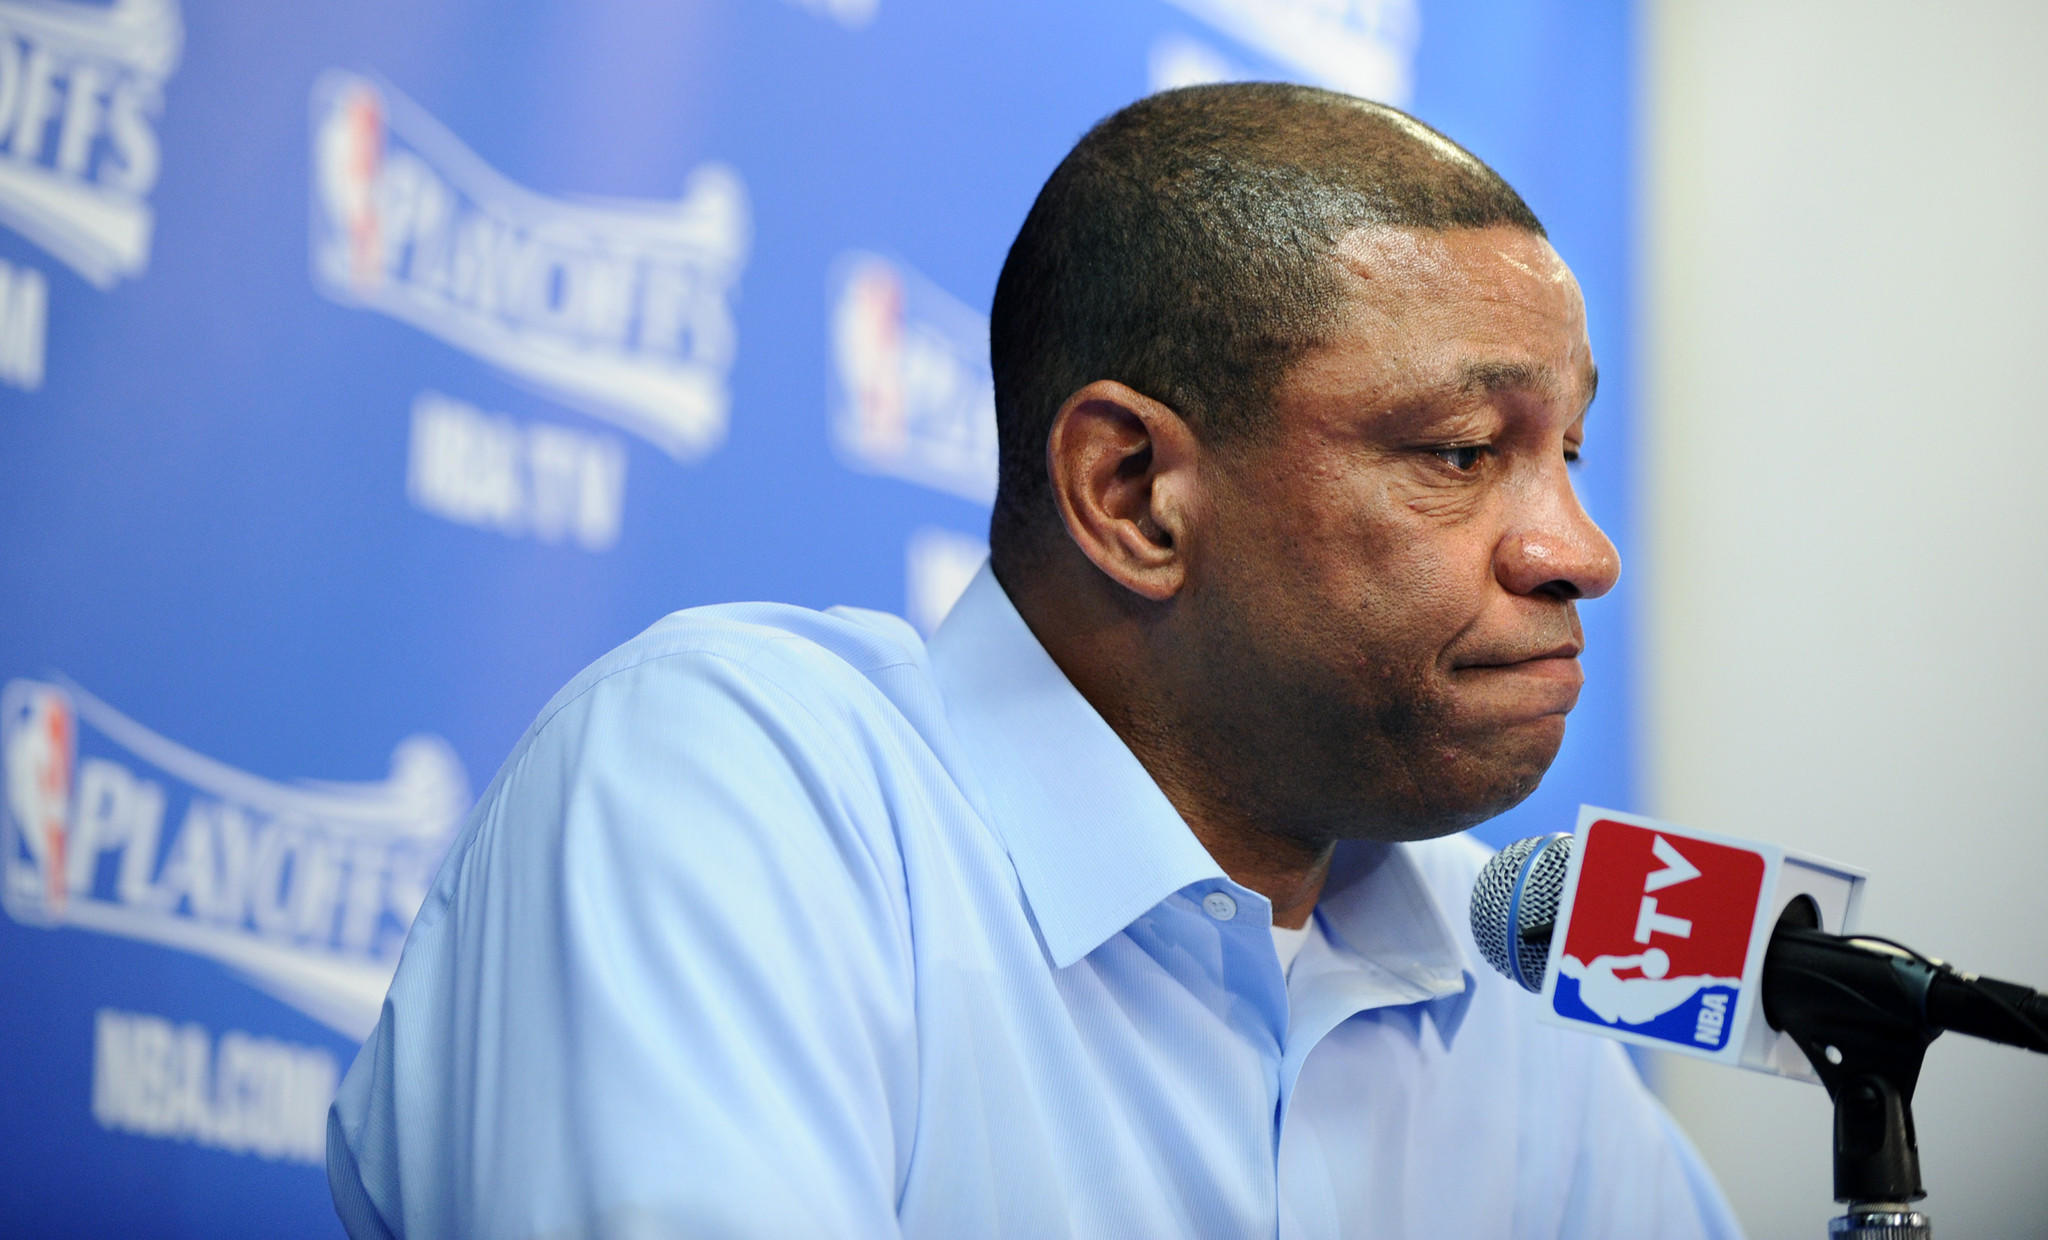 Clippers Coach Doc Rivers speaks to the media before Game 4 of his team's first-round playoff series against the Golden State Warriors on Sunday.